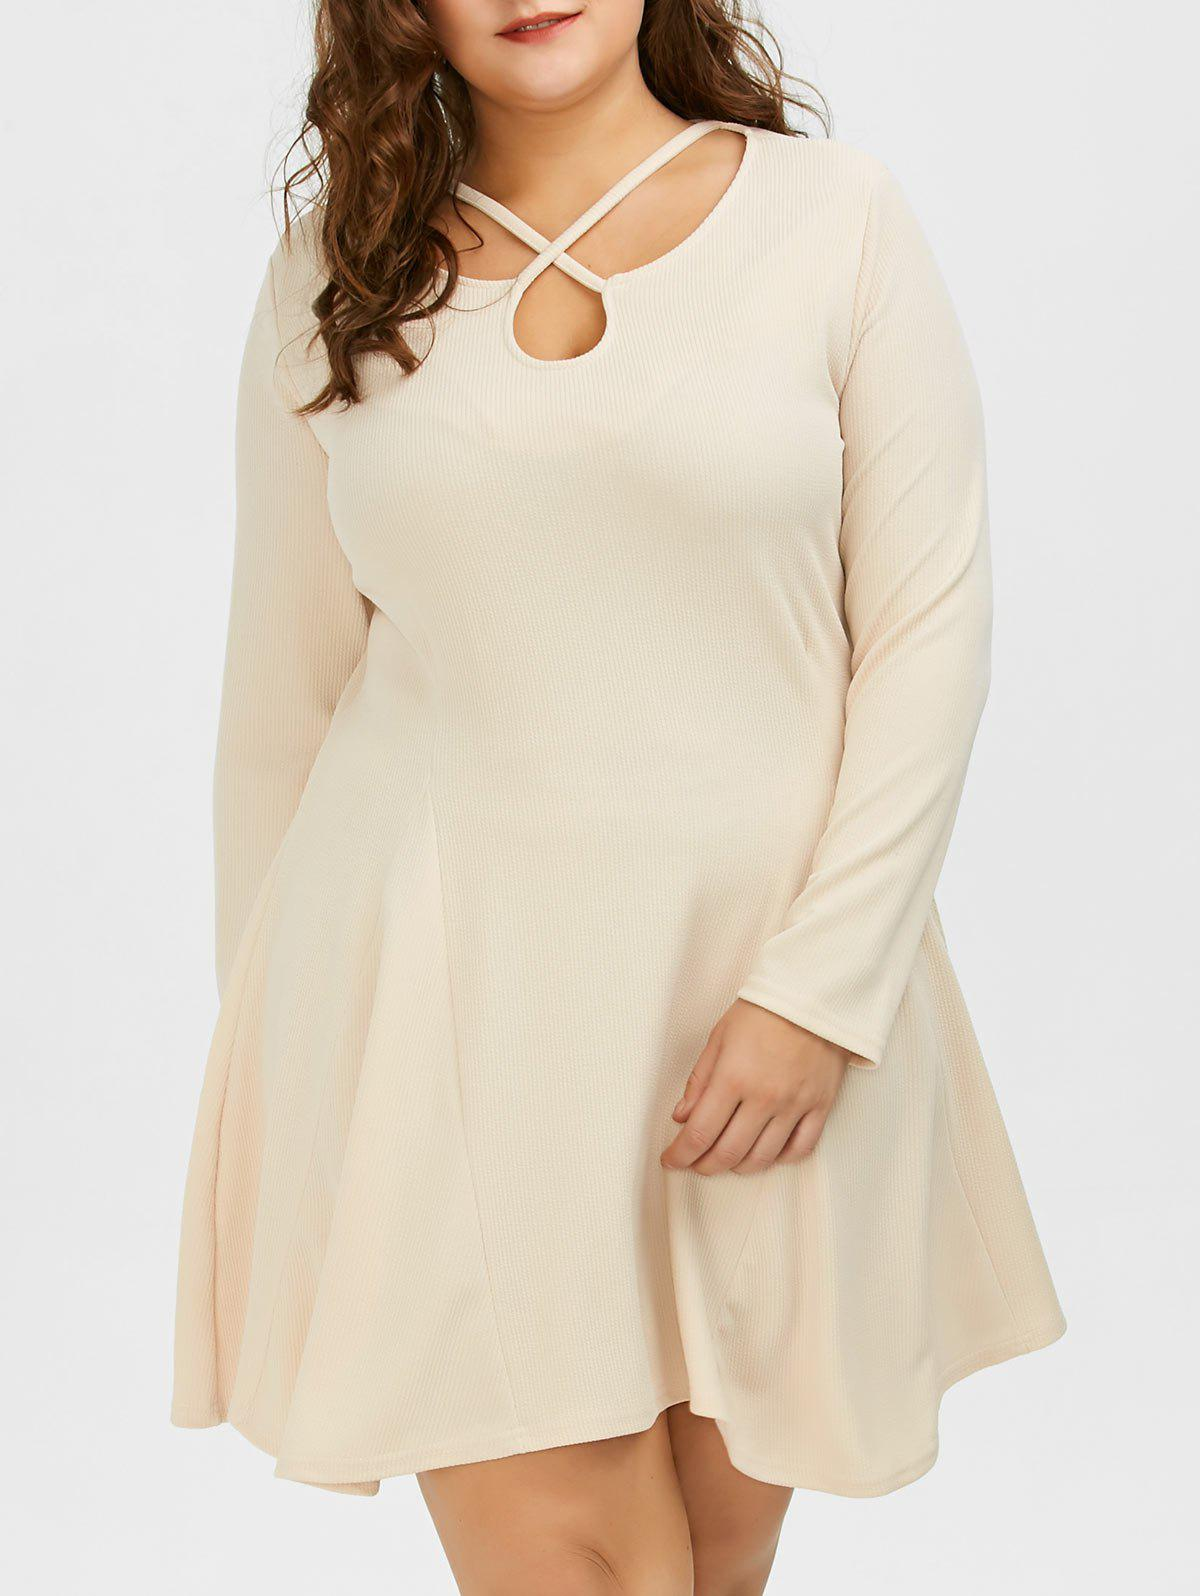 Cutout Plus Size Skater Dress with Long Sleeves - LIGHT KHAKI 3XL